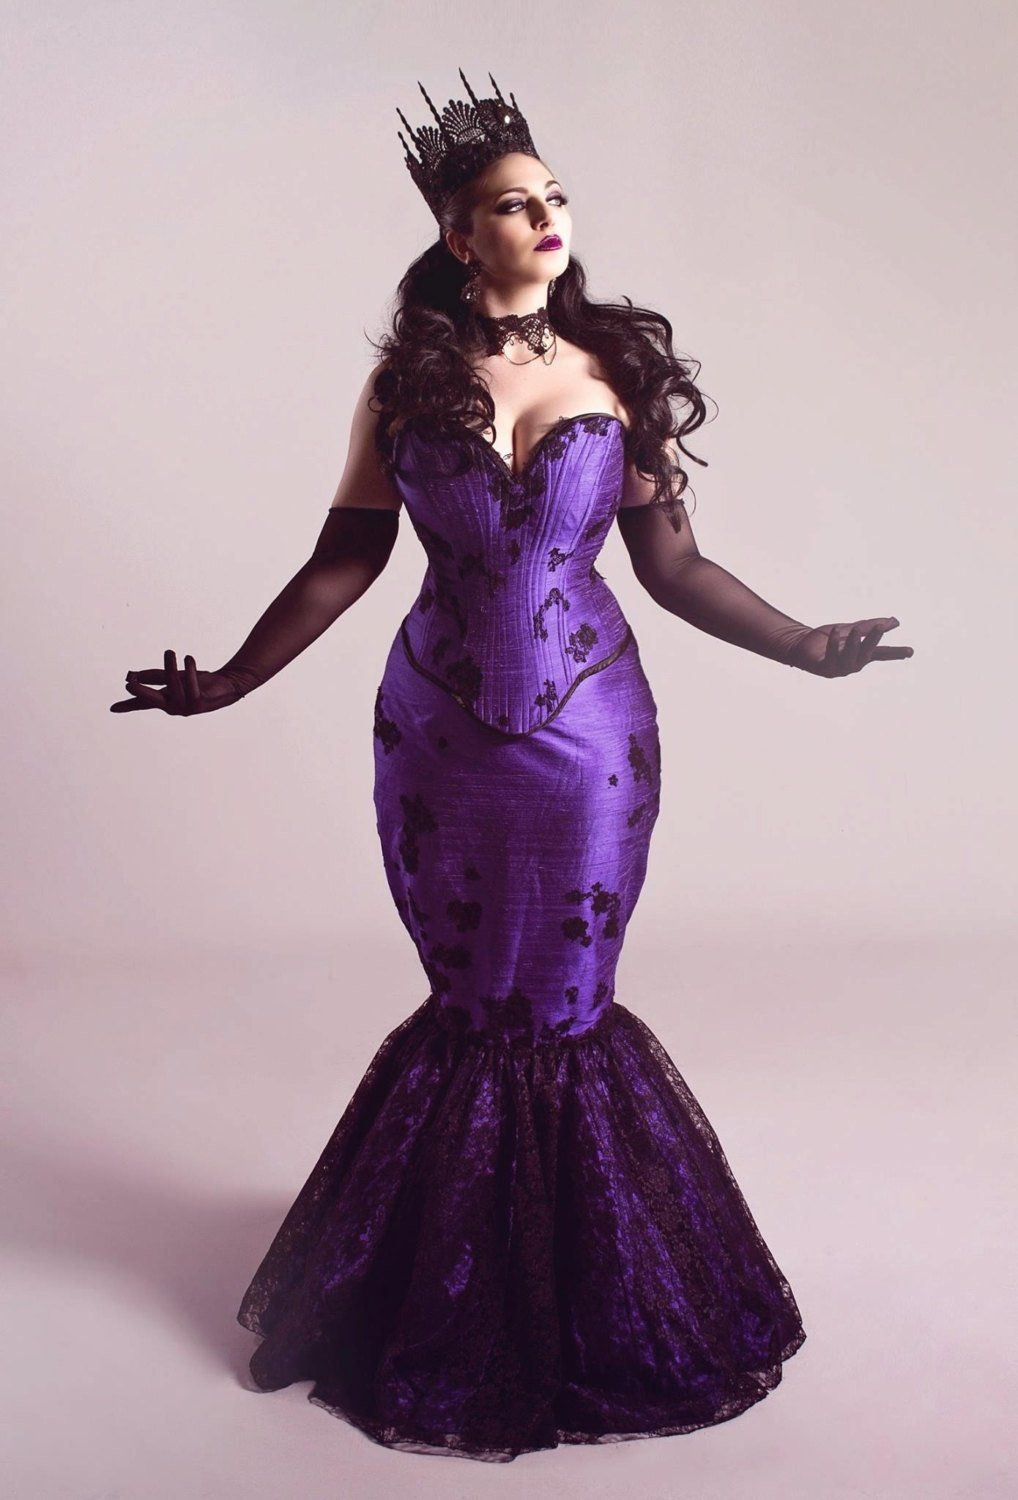 Gothic Purple Wedding Dress Fit And Flare Mermaid Masquerade Etsy Purple Wedding Dress Fit And Flare Wedding Dress Alternative Wedding Gown [ 1500 x 1018 Pixel ]